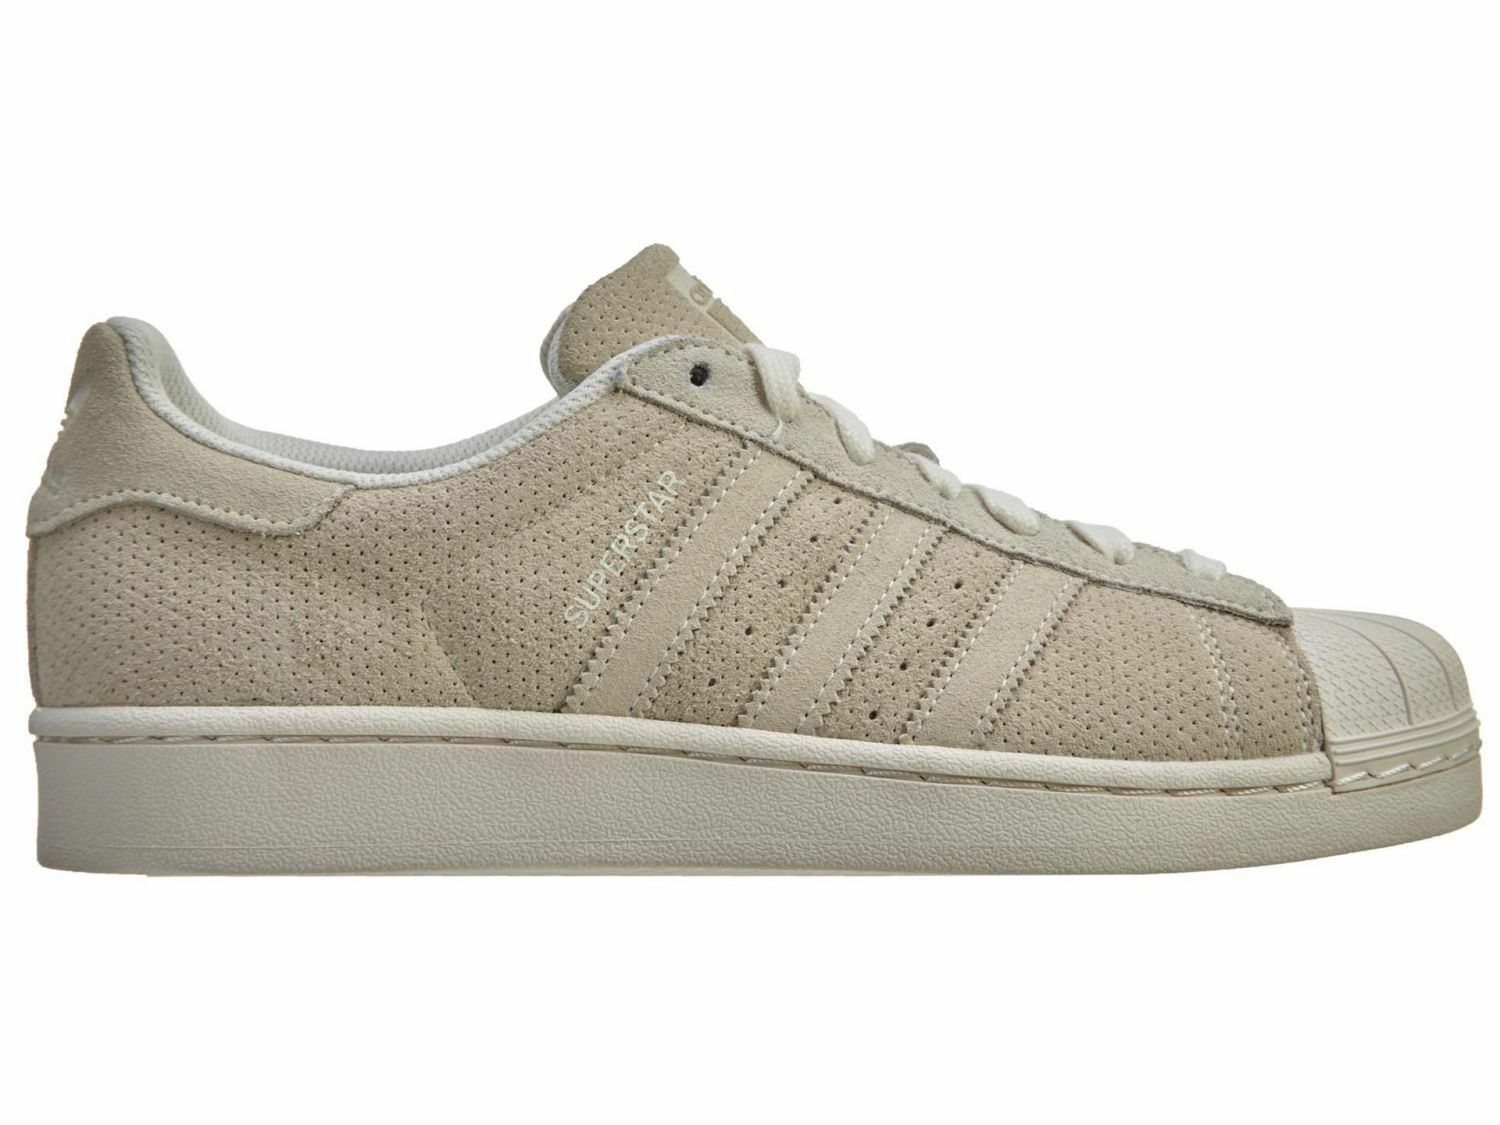 Adidas Superstar RT Uomo S79477 Chalk White Suede Perforated Shoes Size 13